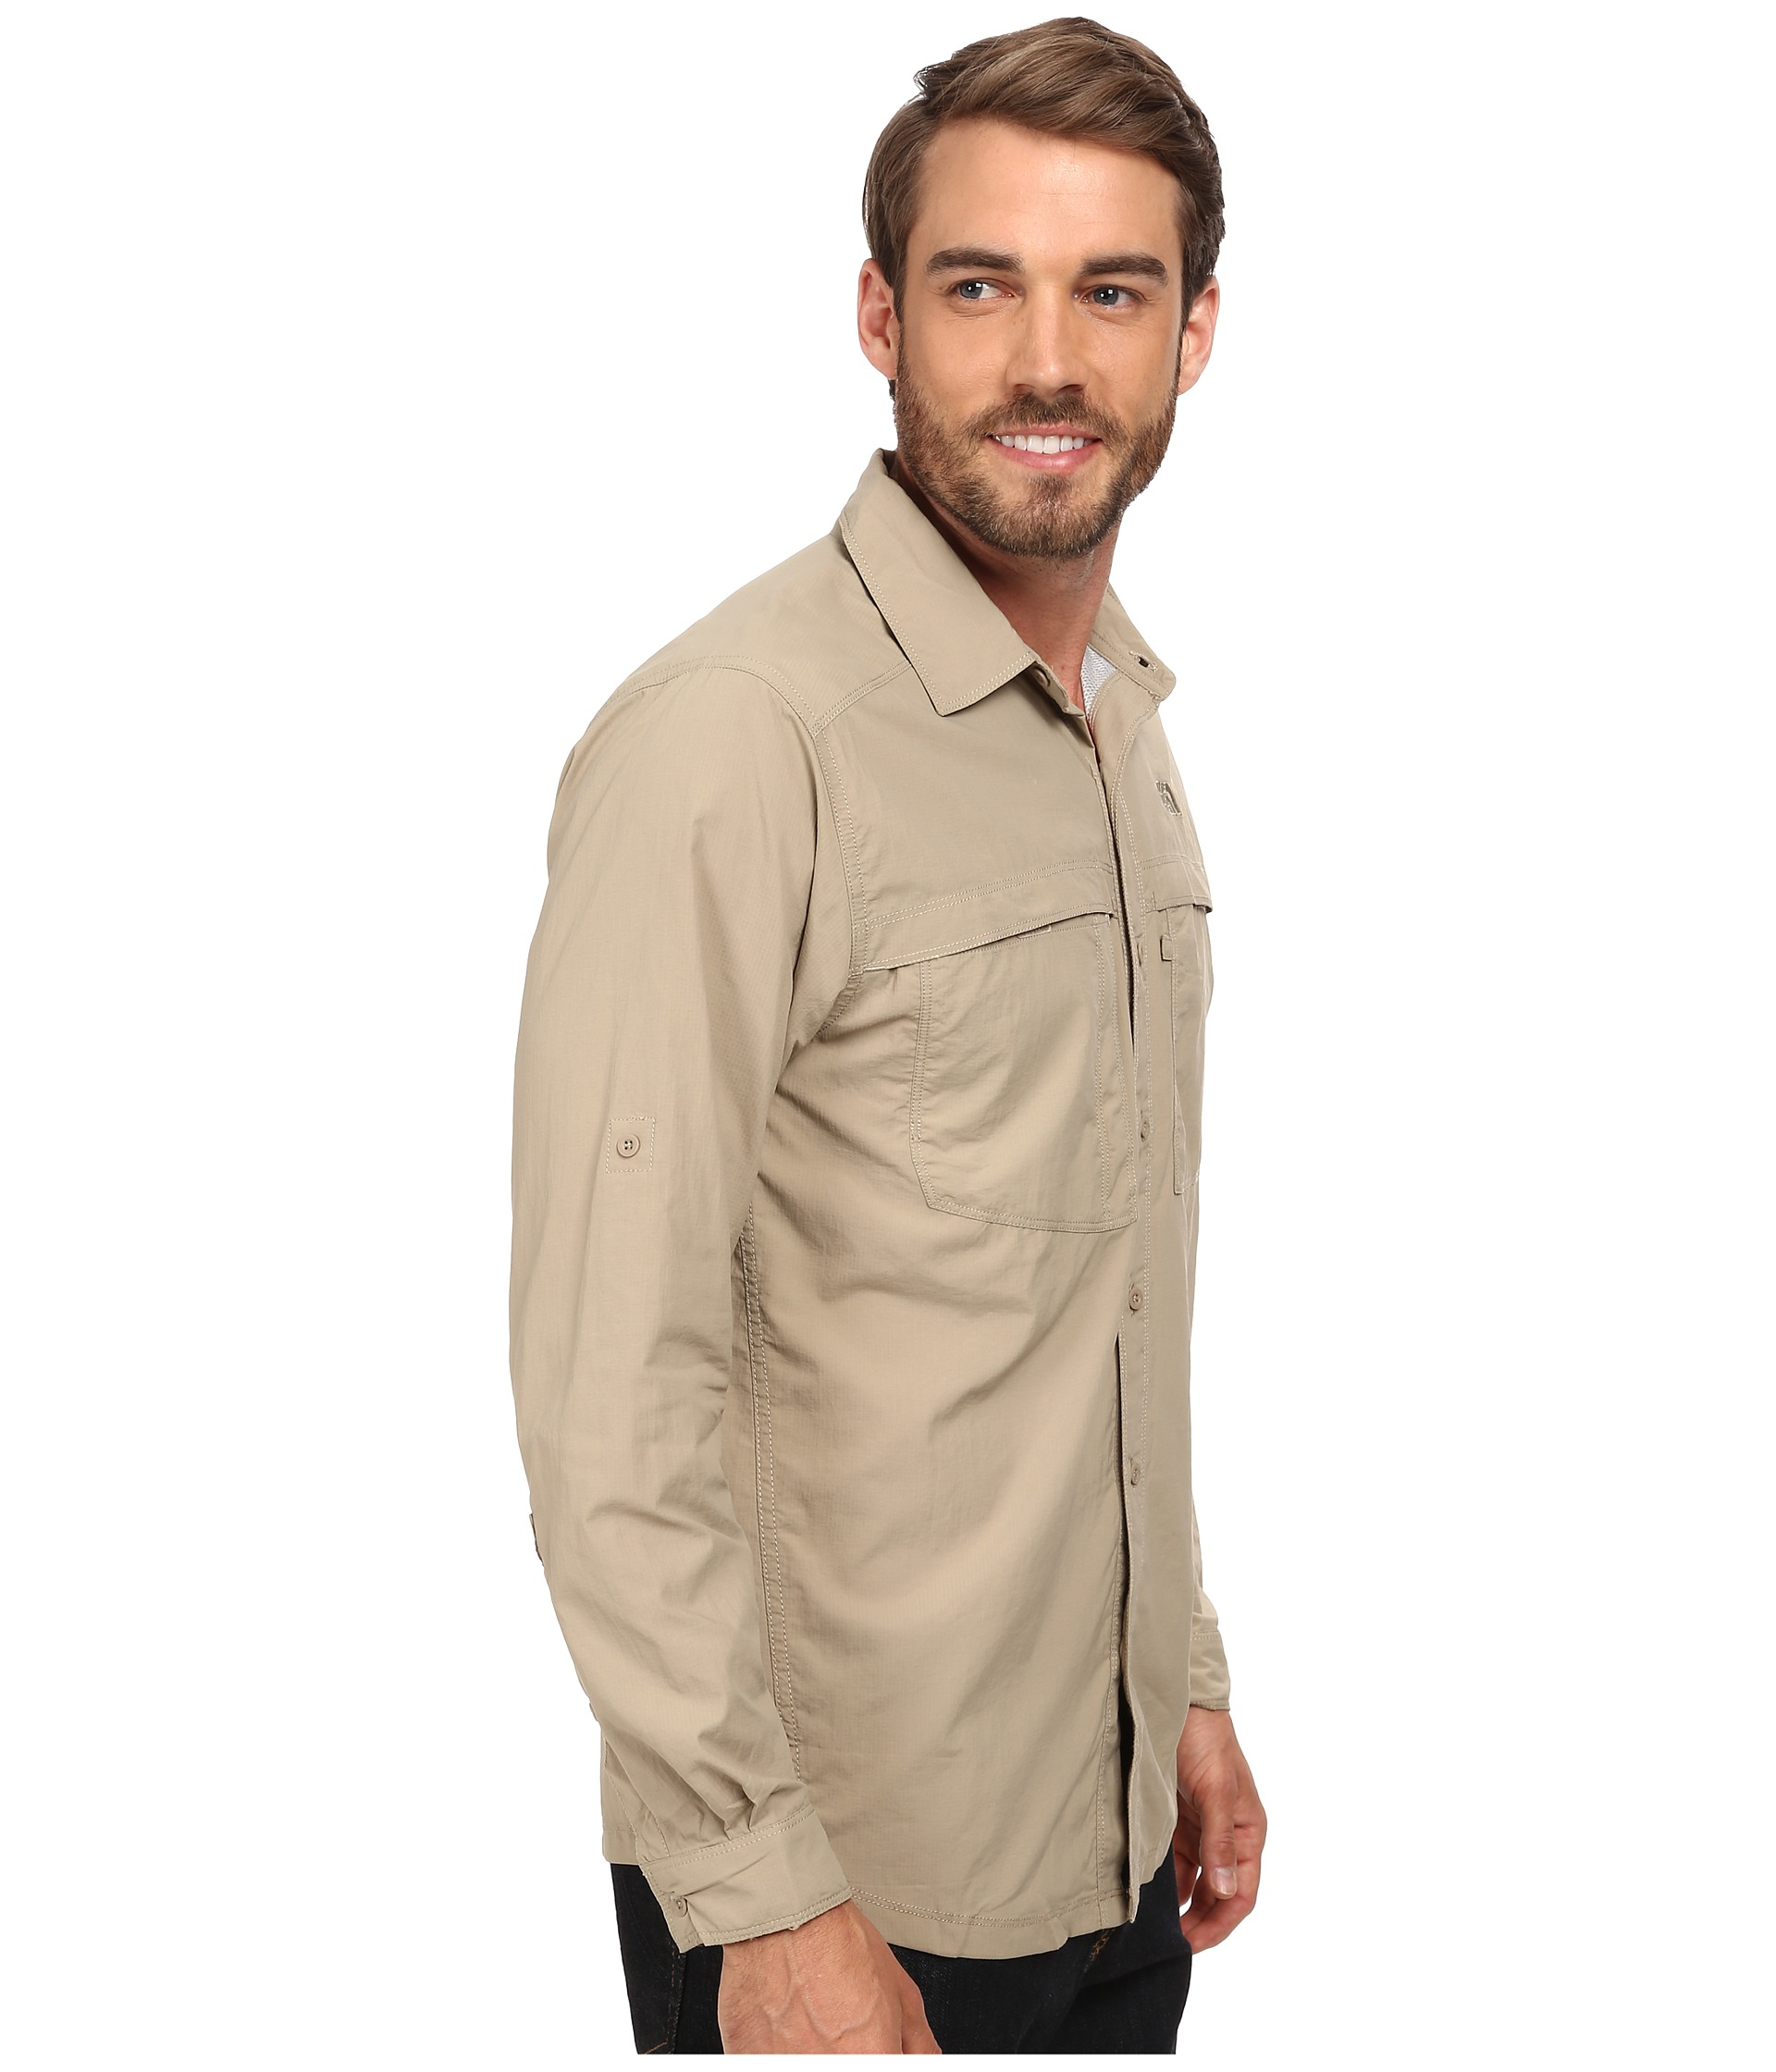 b5127ca8e54 Lyst - The North Face Long Sleeve Cool Horizon Shirt in Natural for Men